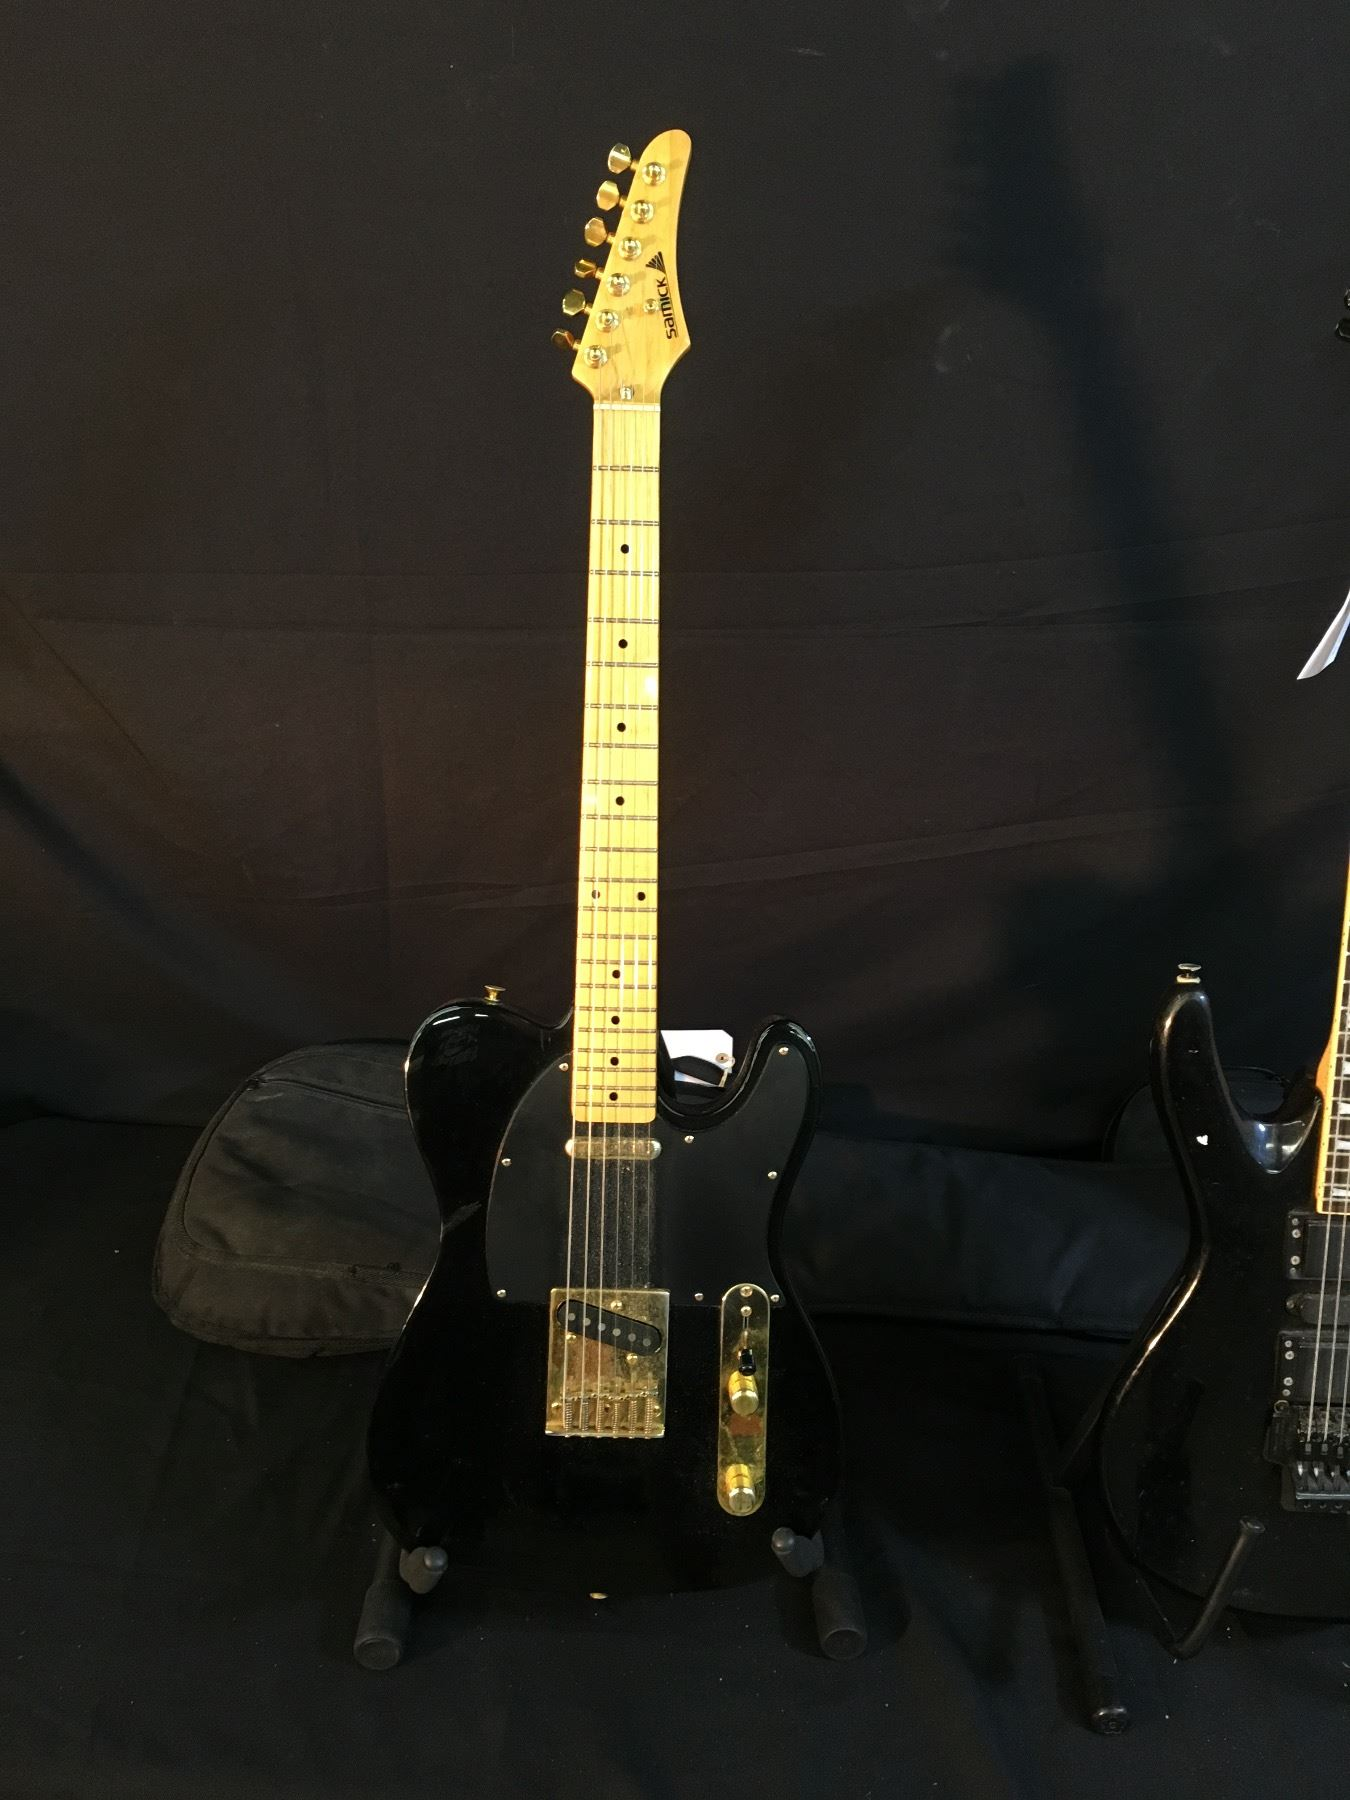 hight resolution of  image 4 3 guitars squier 5 string jazz bass with soft shell case